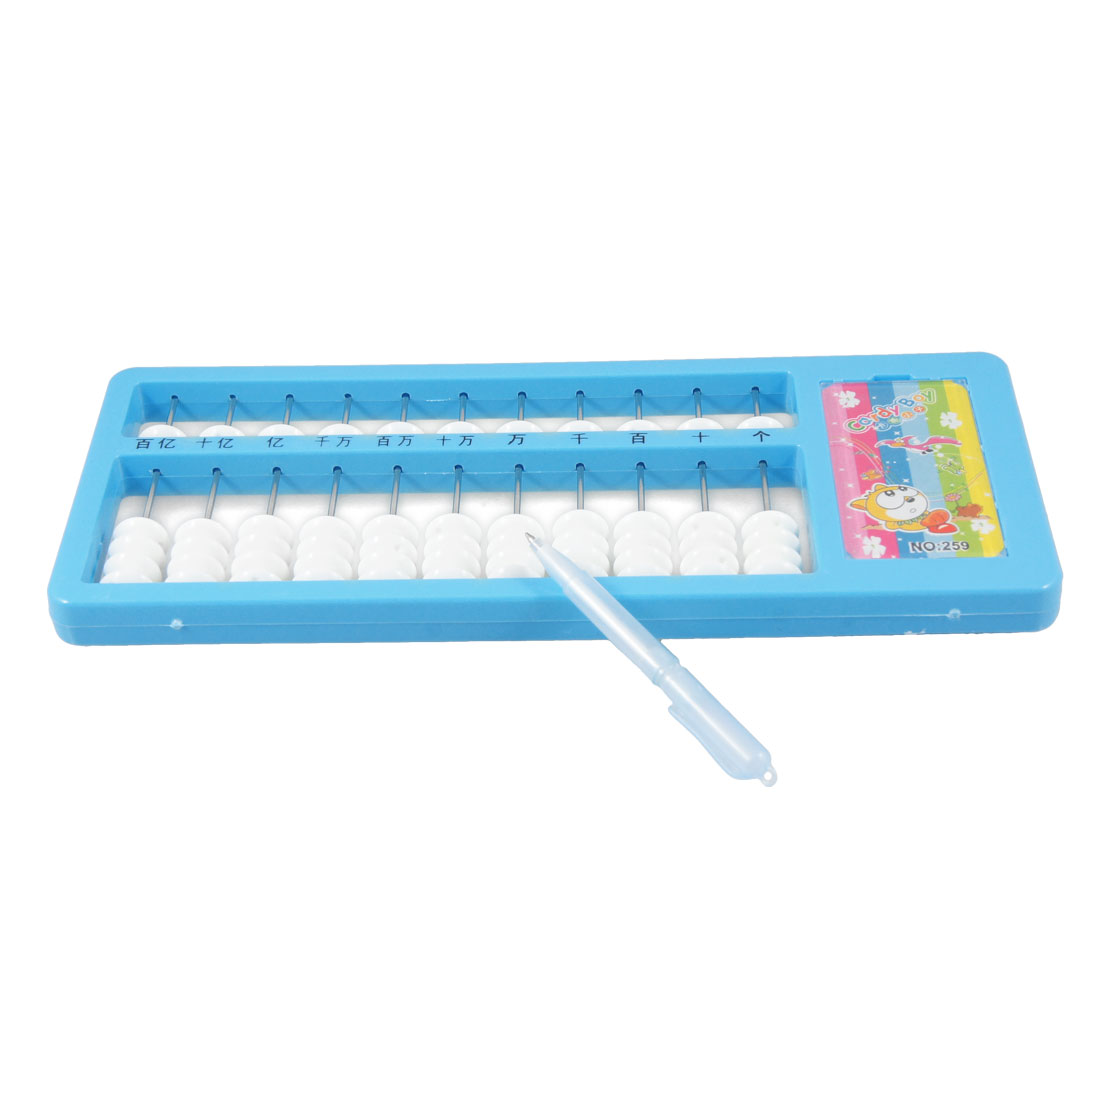 Music Note Accent Blue Plastic Frame 55 White Beads 11 Digits Abacus Soroban